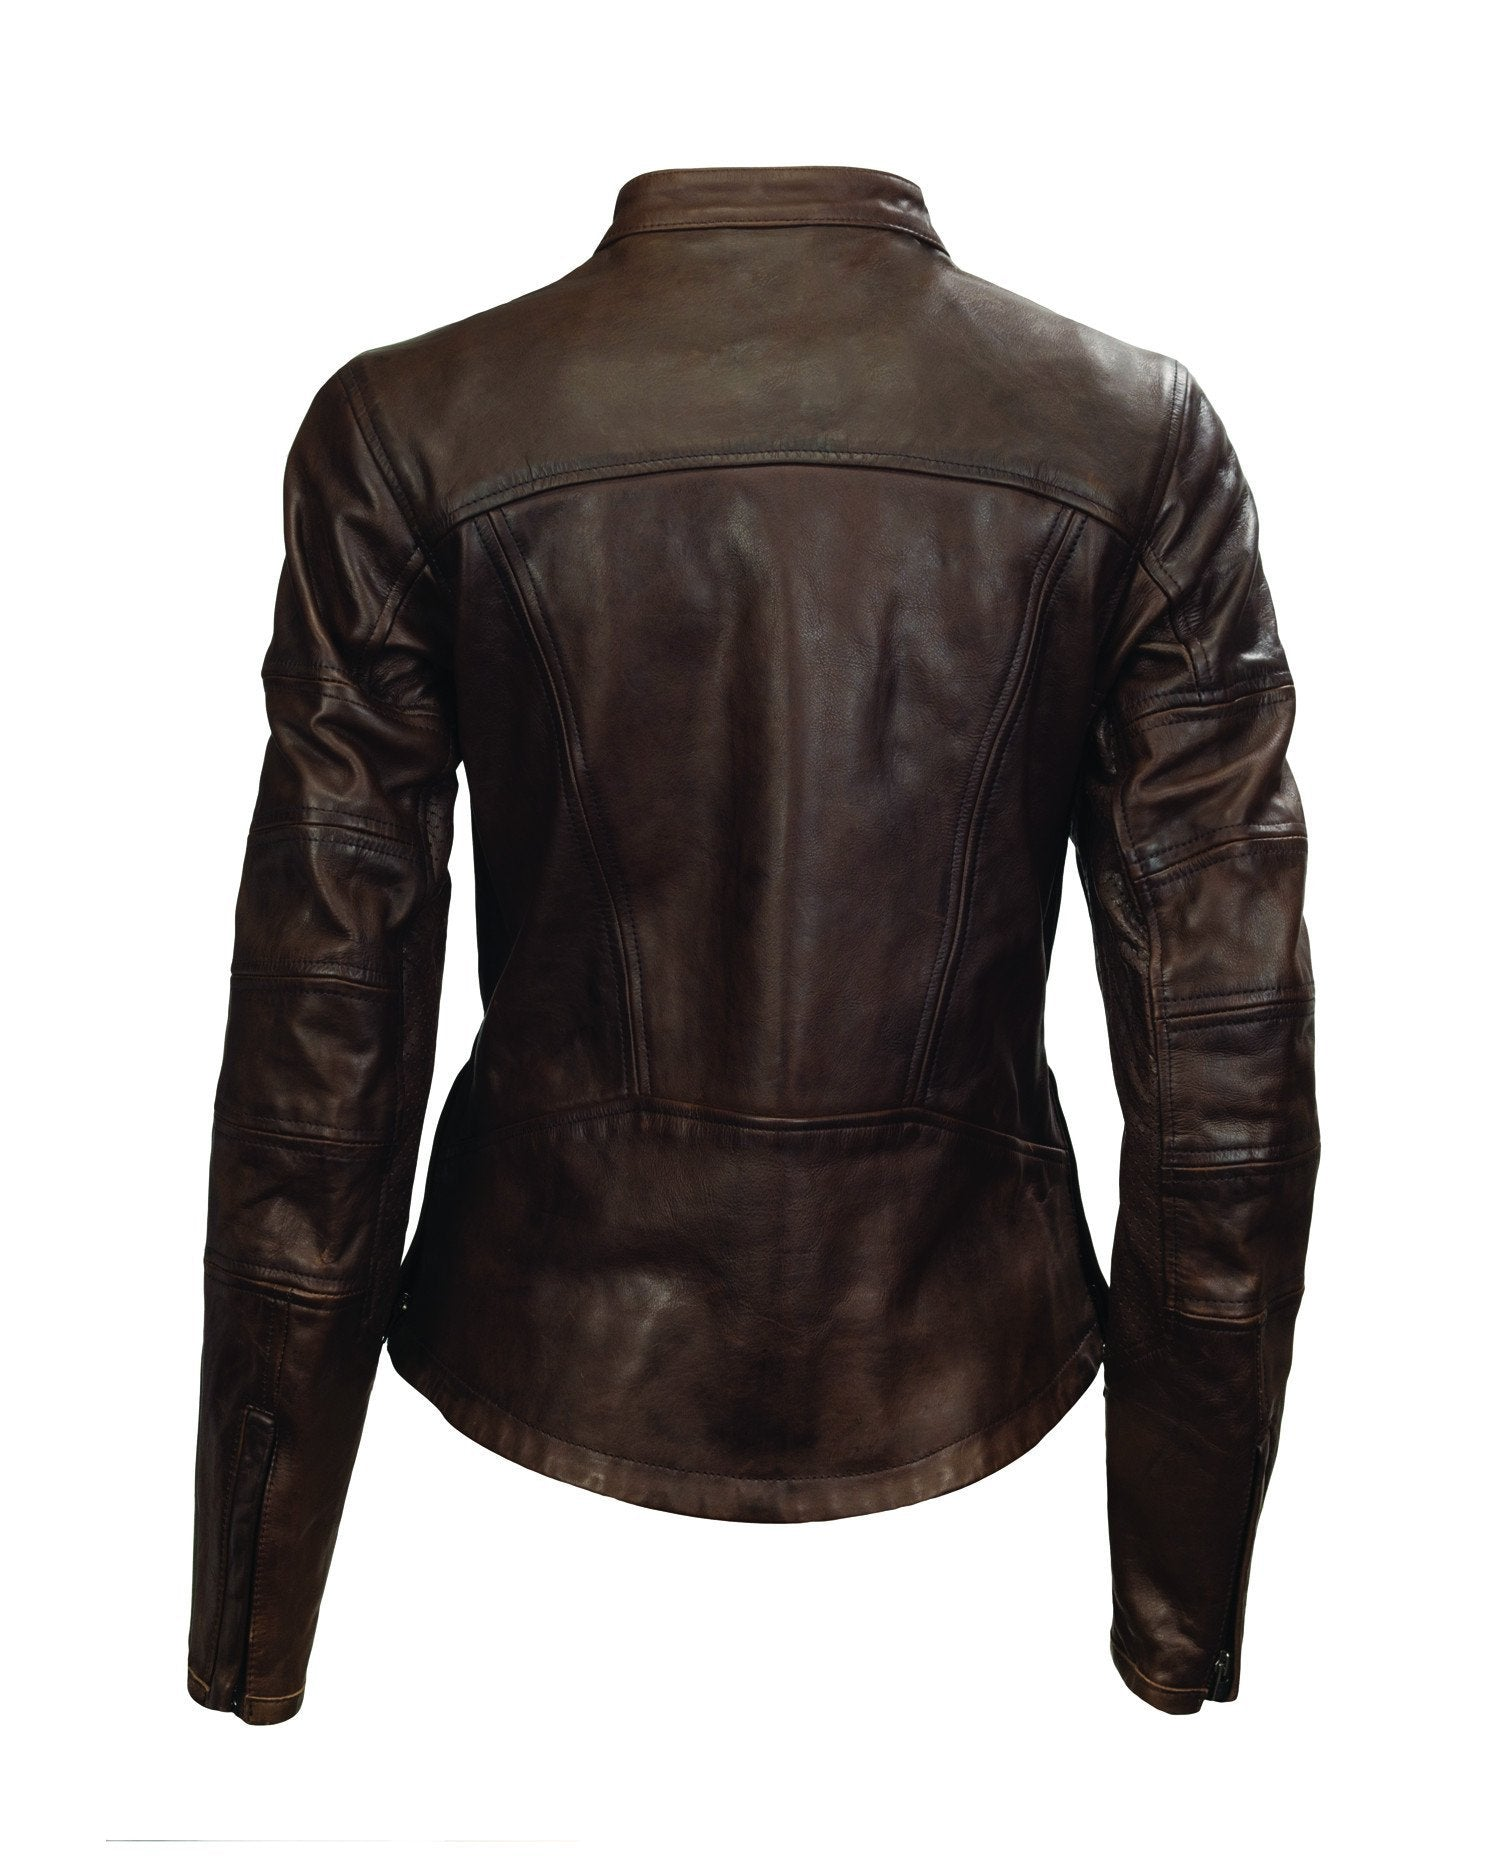 Roland Sands Design - Roland Sands Design Maven Tobacco Leather Jacket - Ladies Jackets - Salt Flats Clothing